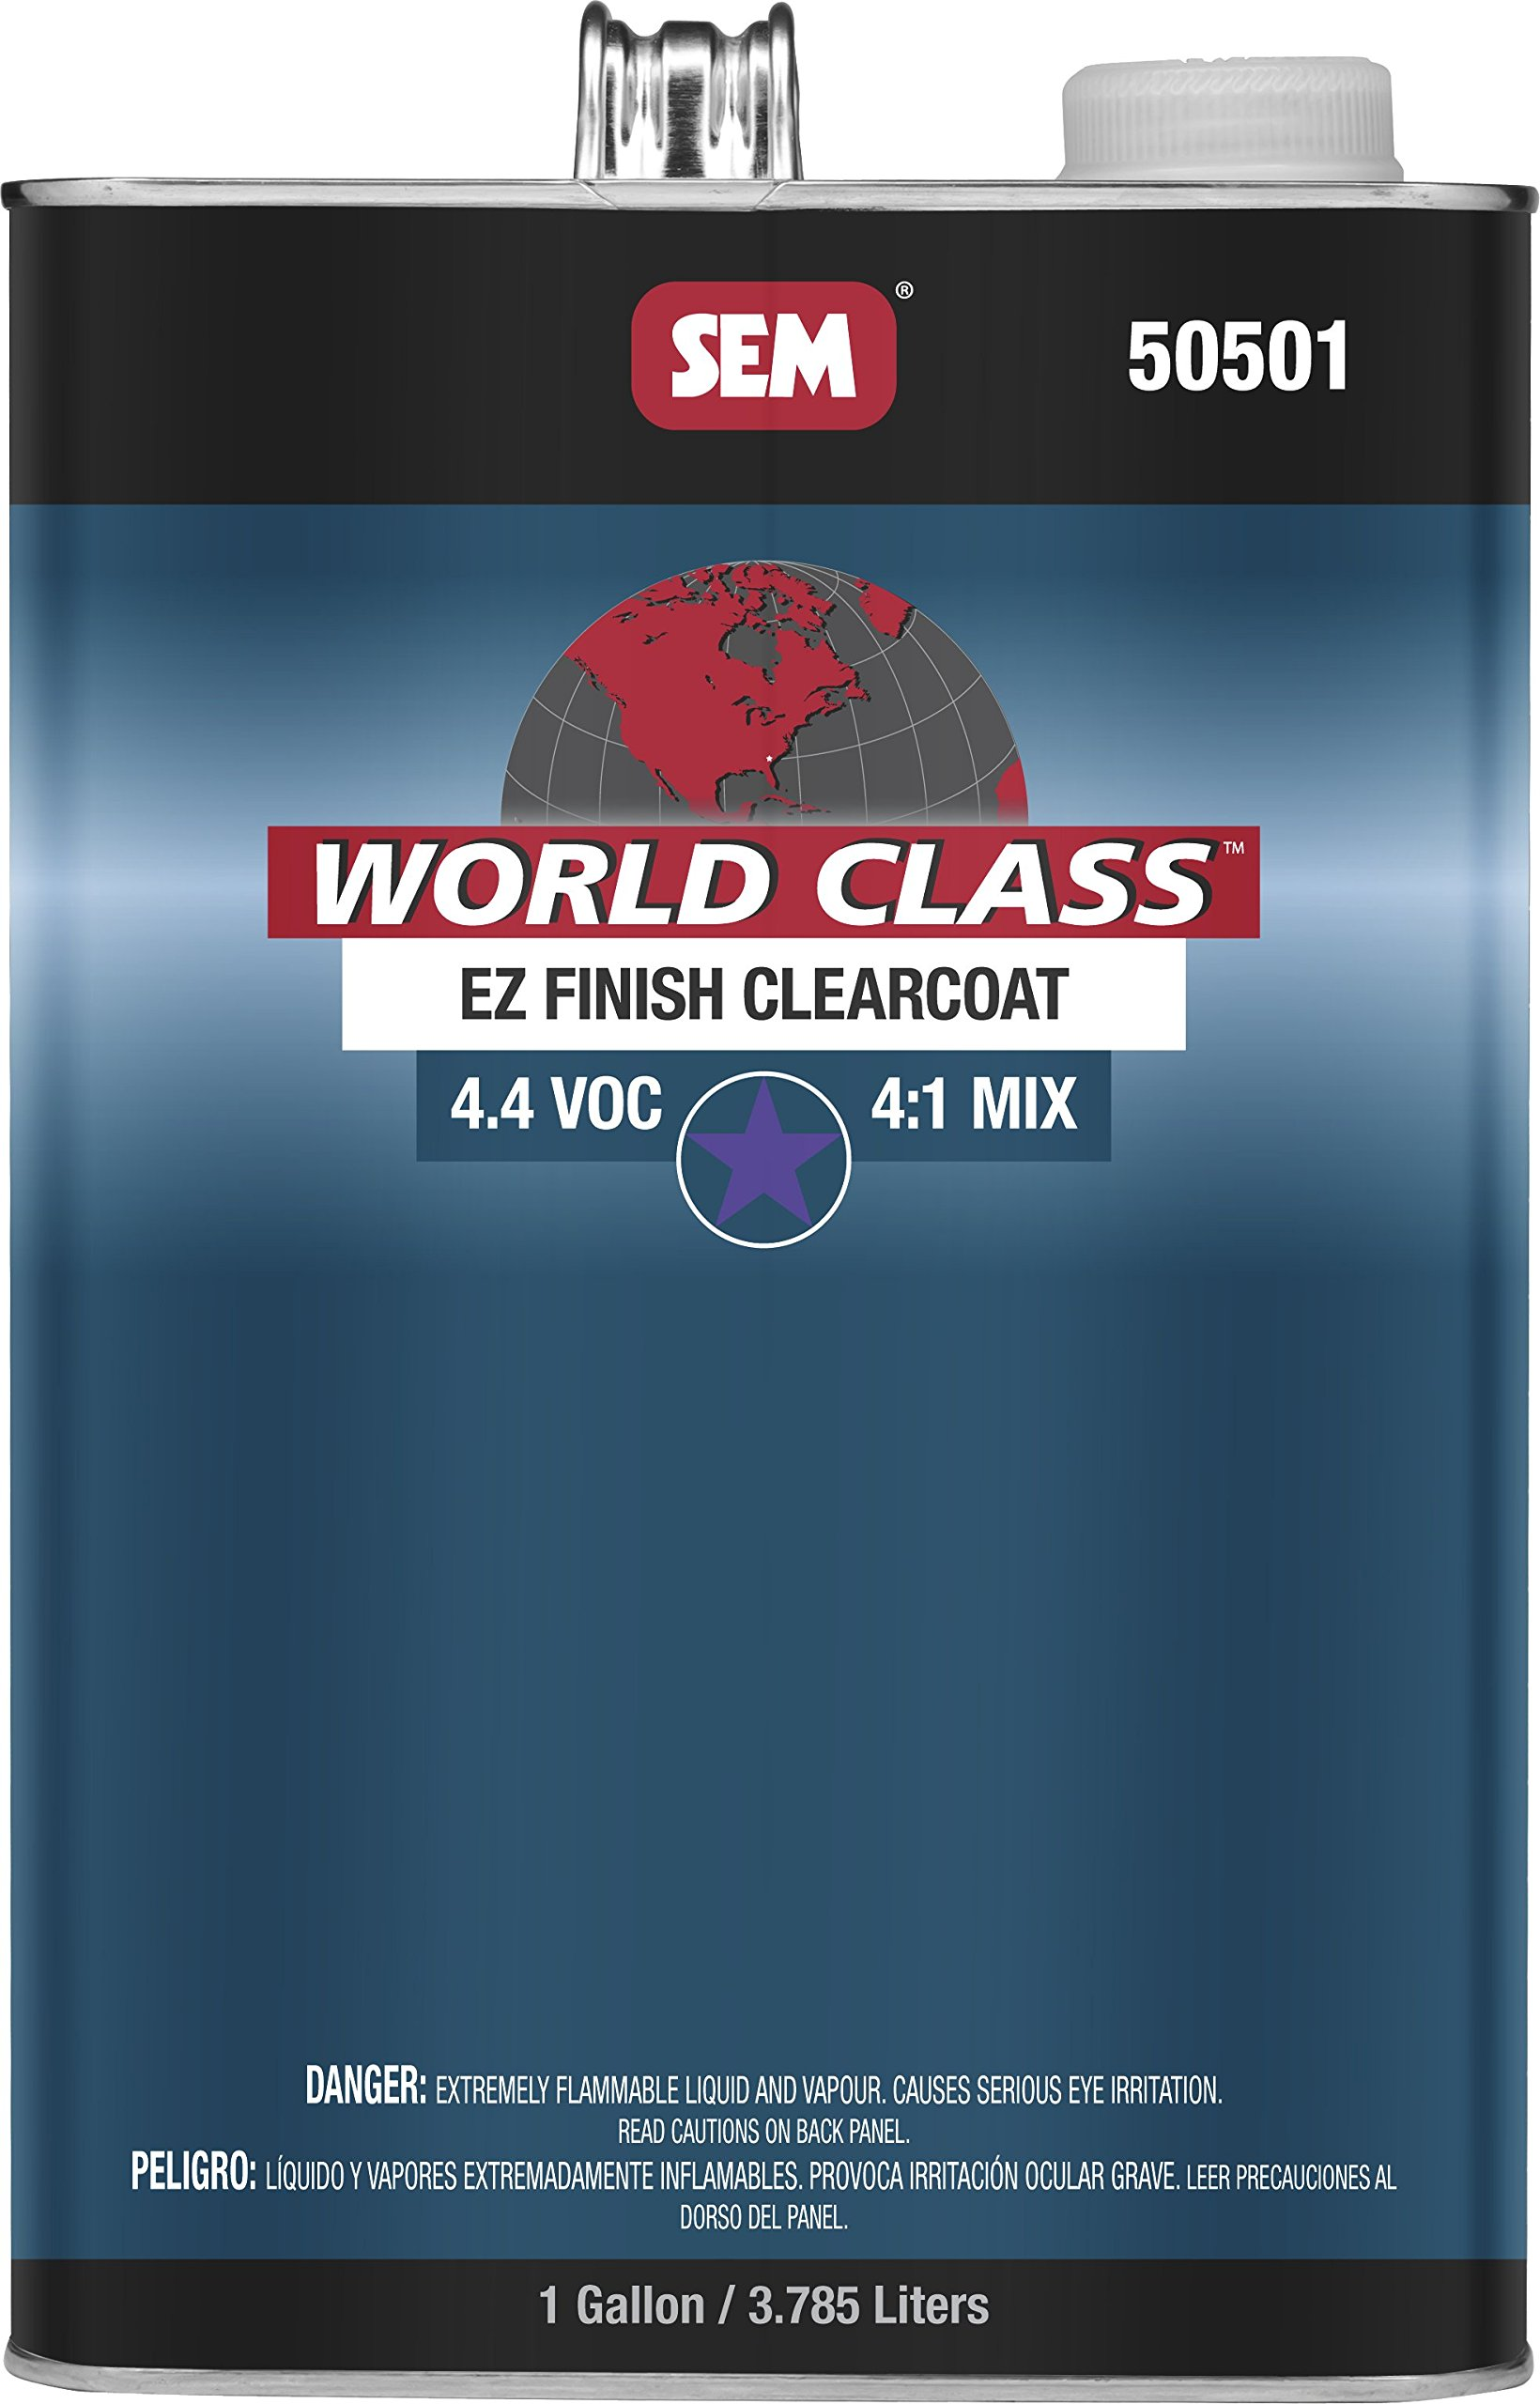 SEM 50501 Gallon World Class Ez Finish 4.2 Voc Clearcoat by SEM (Image #1)